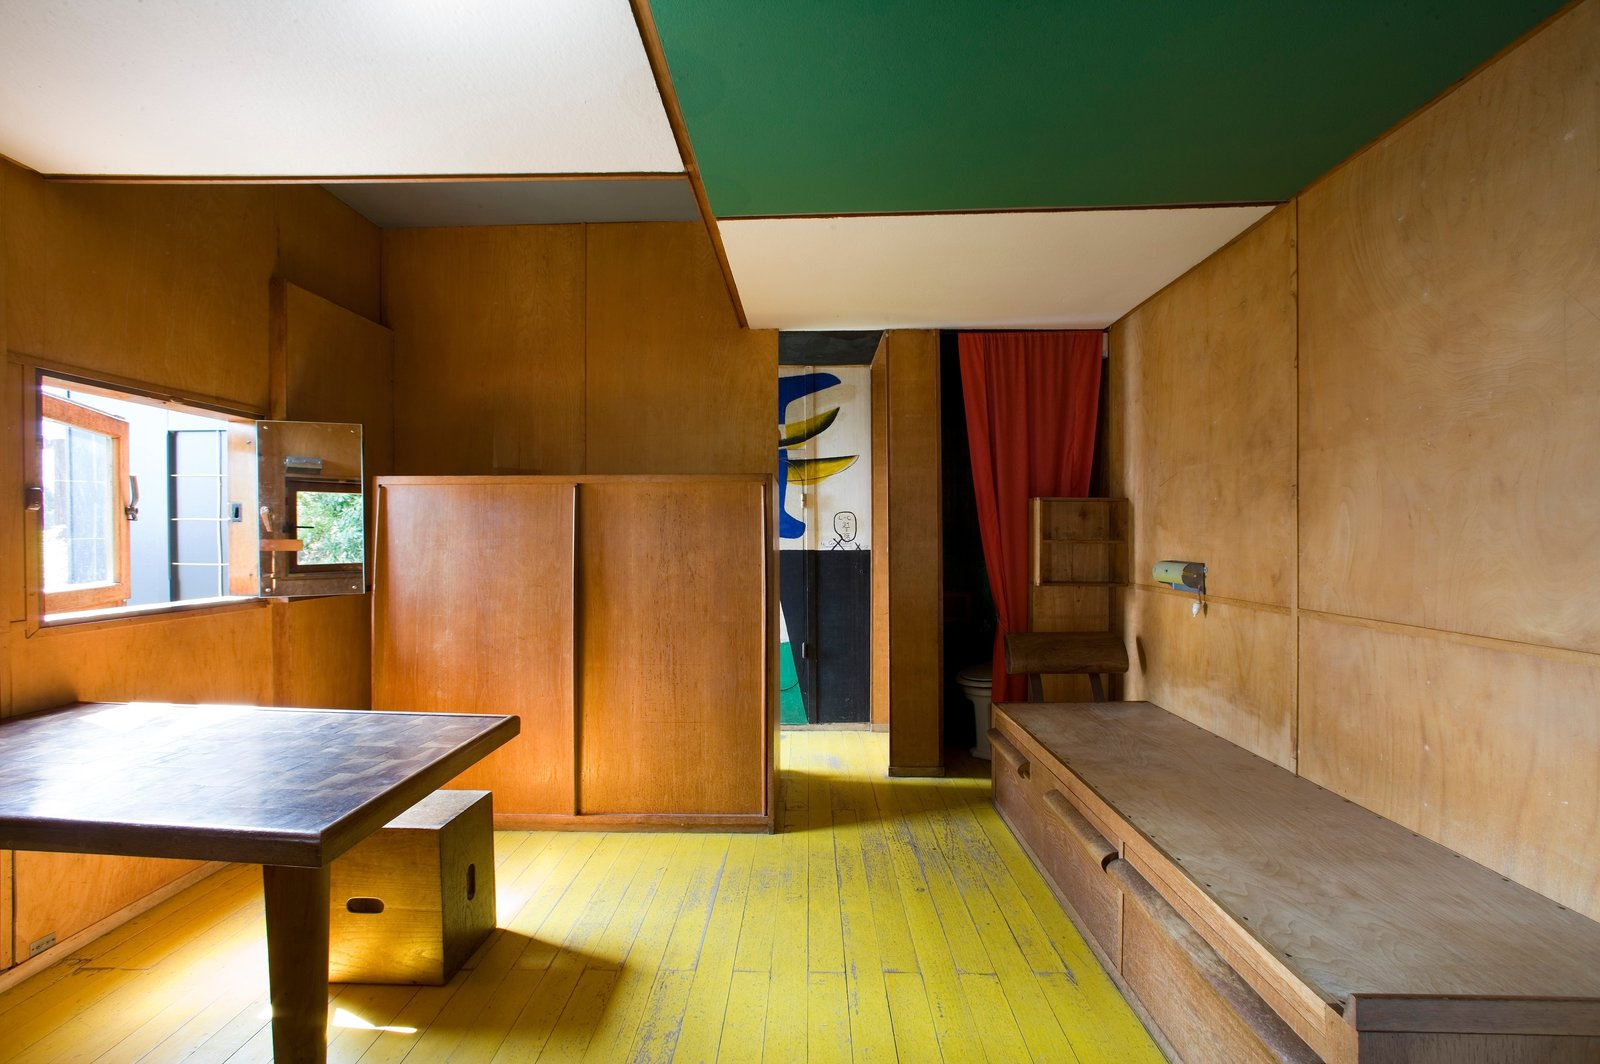 Photo 46 of 46 in UNESCO Adds 146 Le Corbusier Buildings to Its ... - Cabanon Le Corbusier